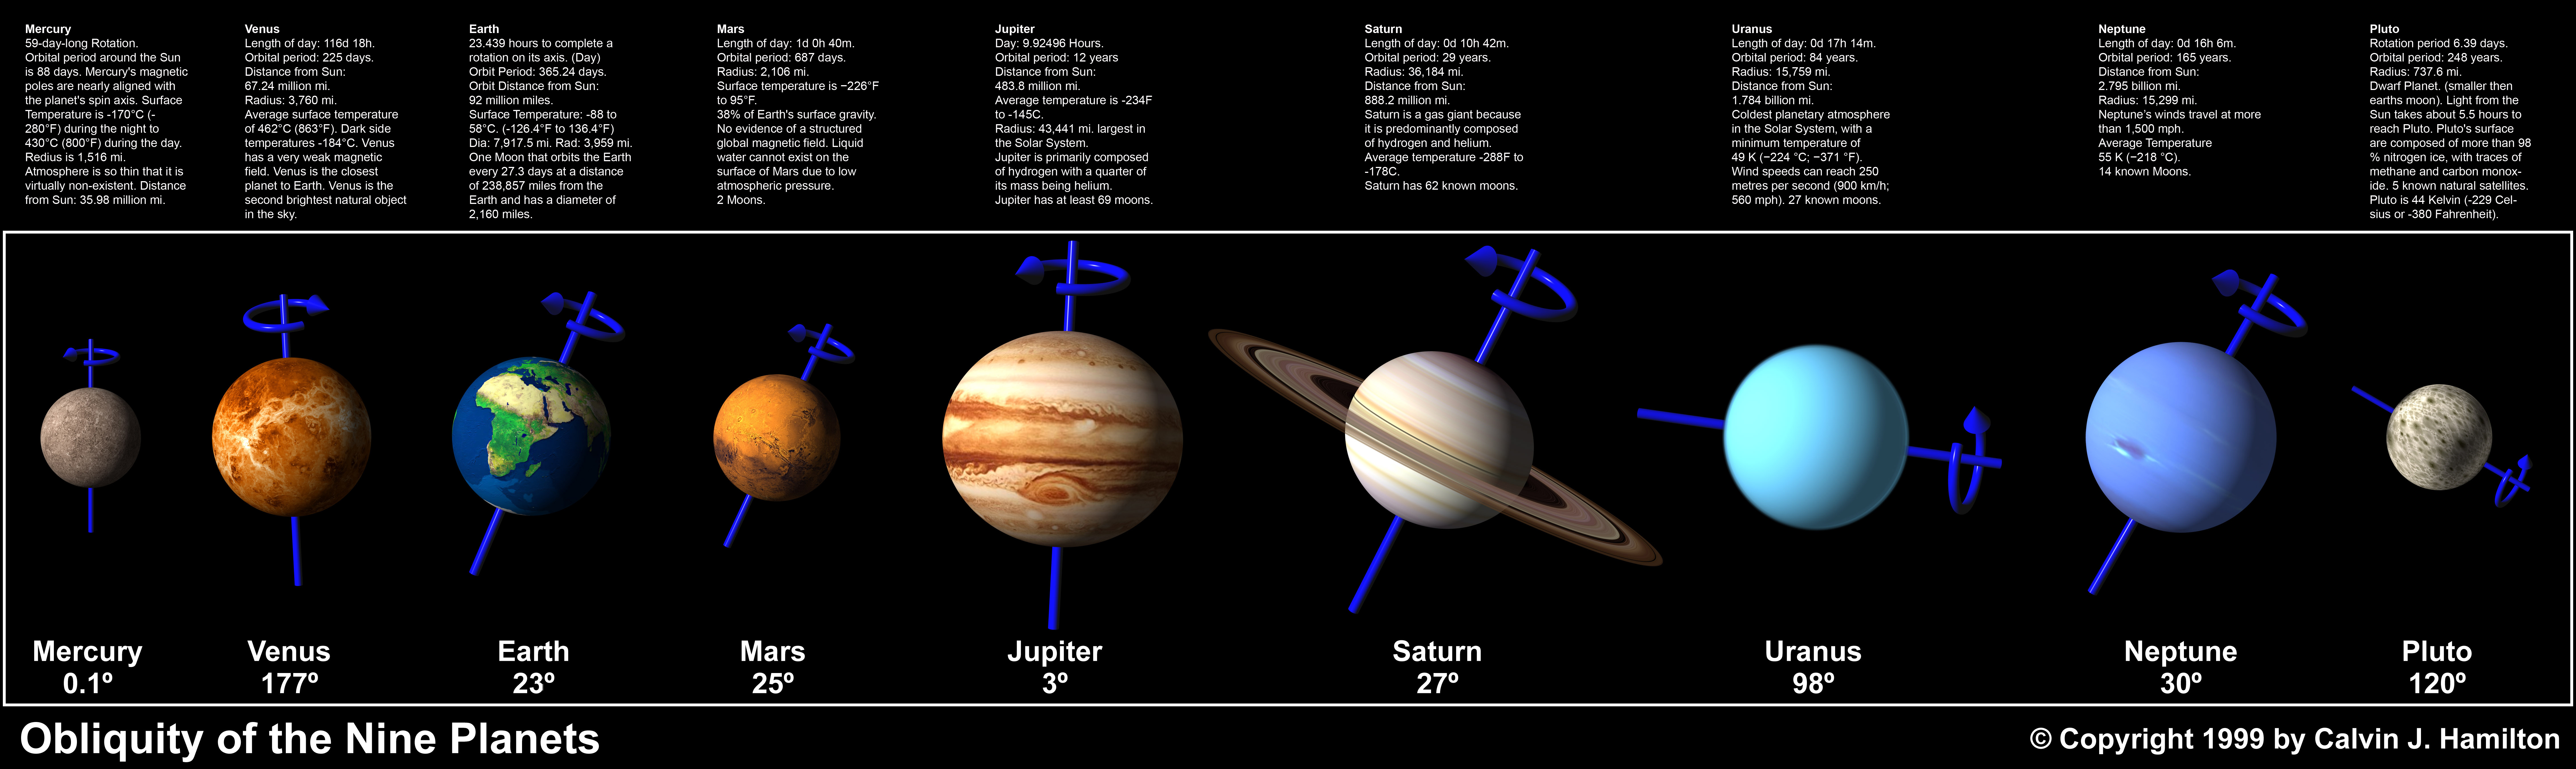 diagram of the planets in order 4 prong generator plug wiring cool infographs about science universe and other